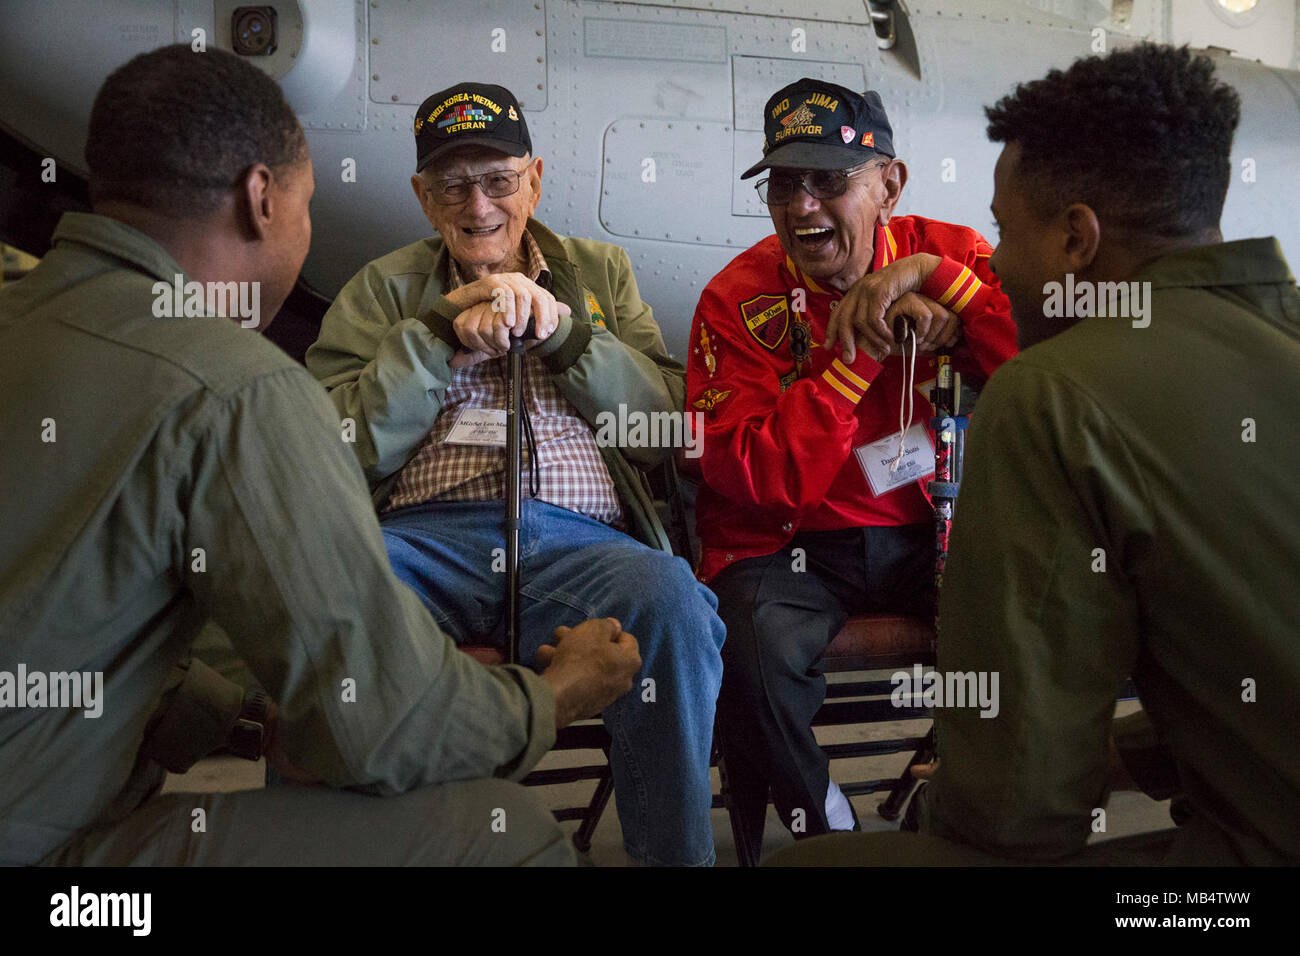 Len Maffioli and Damaso Sutis, two retired Marines and Iwo Jima veterans, share stories and laughs with active-duty Marines with Marine Medium Tiltrotor Squadron (VMM) 363 at Marine Corps Air Station Miramar, Calif., Feb. 16. This year marks the 73rd anniversary of the Battle of Iwo Jima, which began Feb. 19, 1945 and ended March 26, 1945. Stock Photo